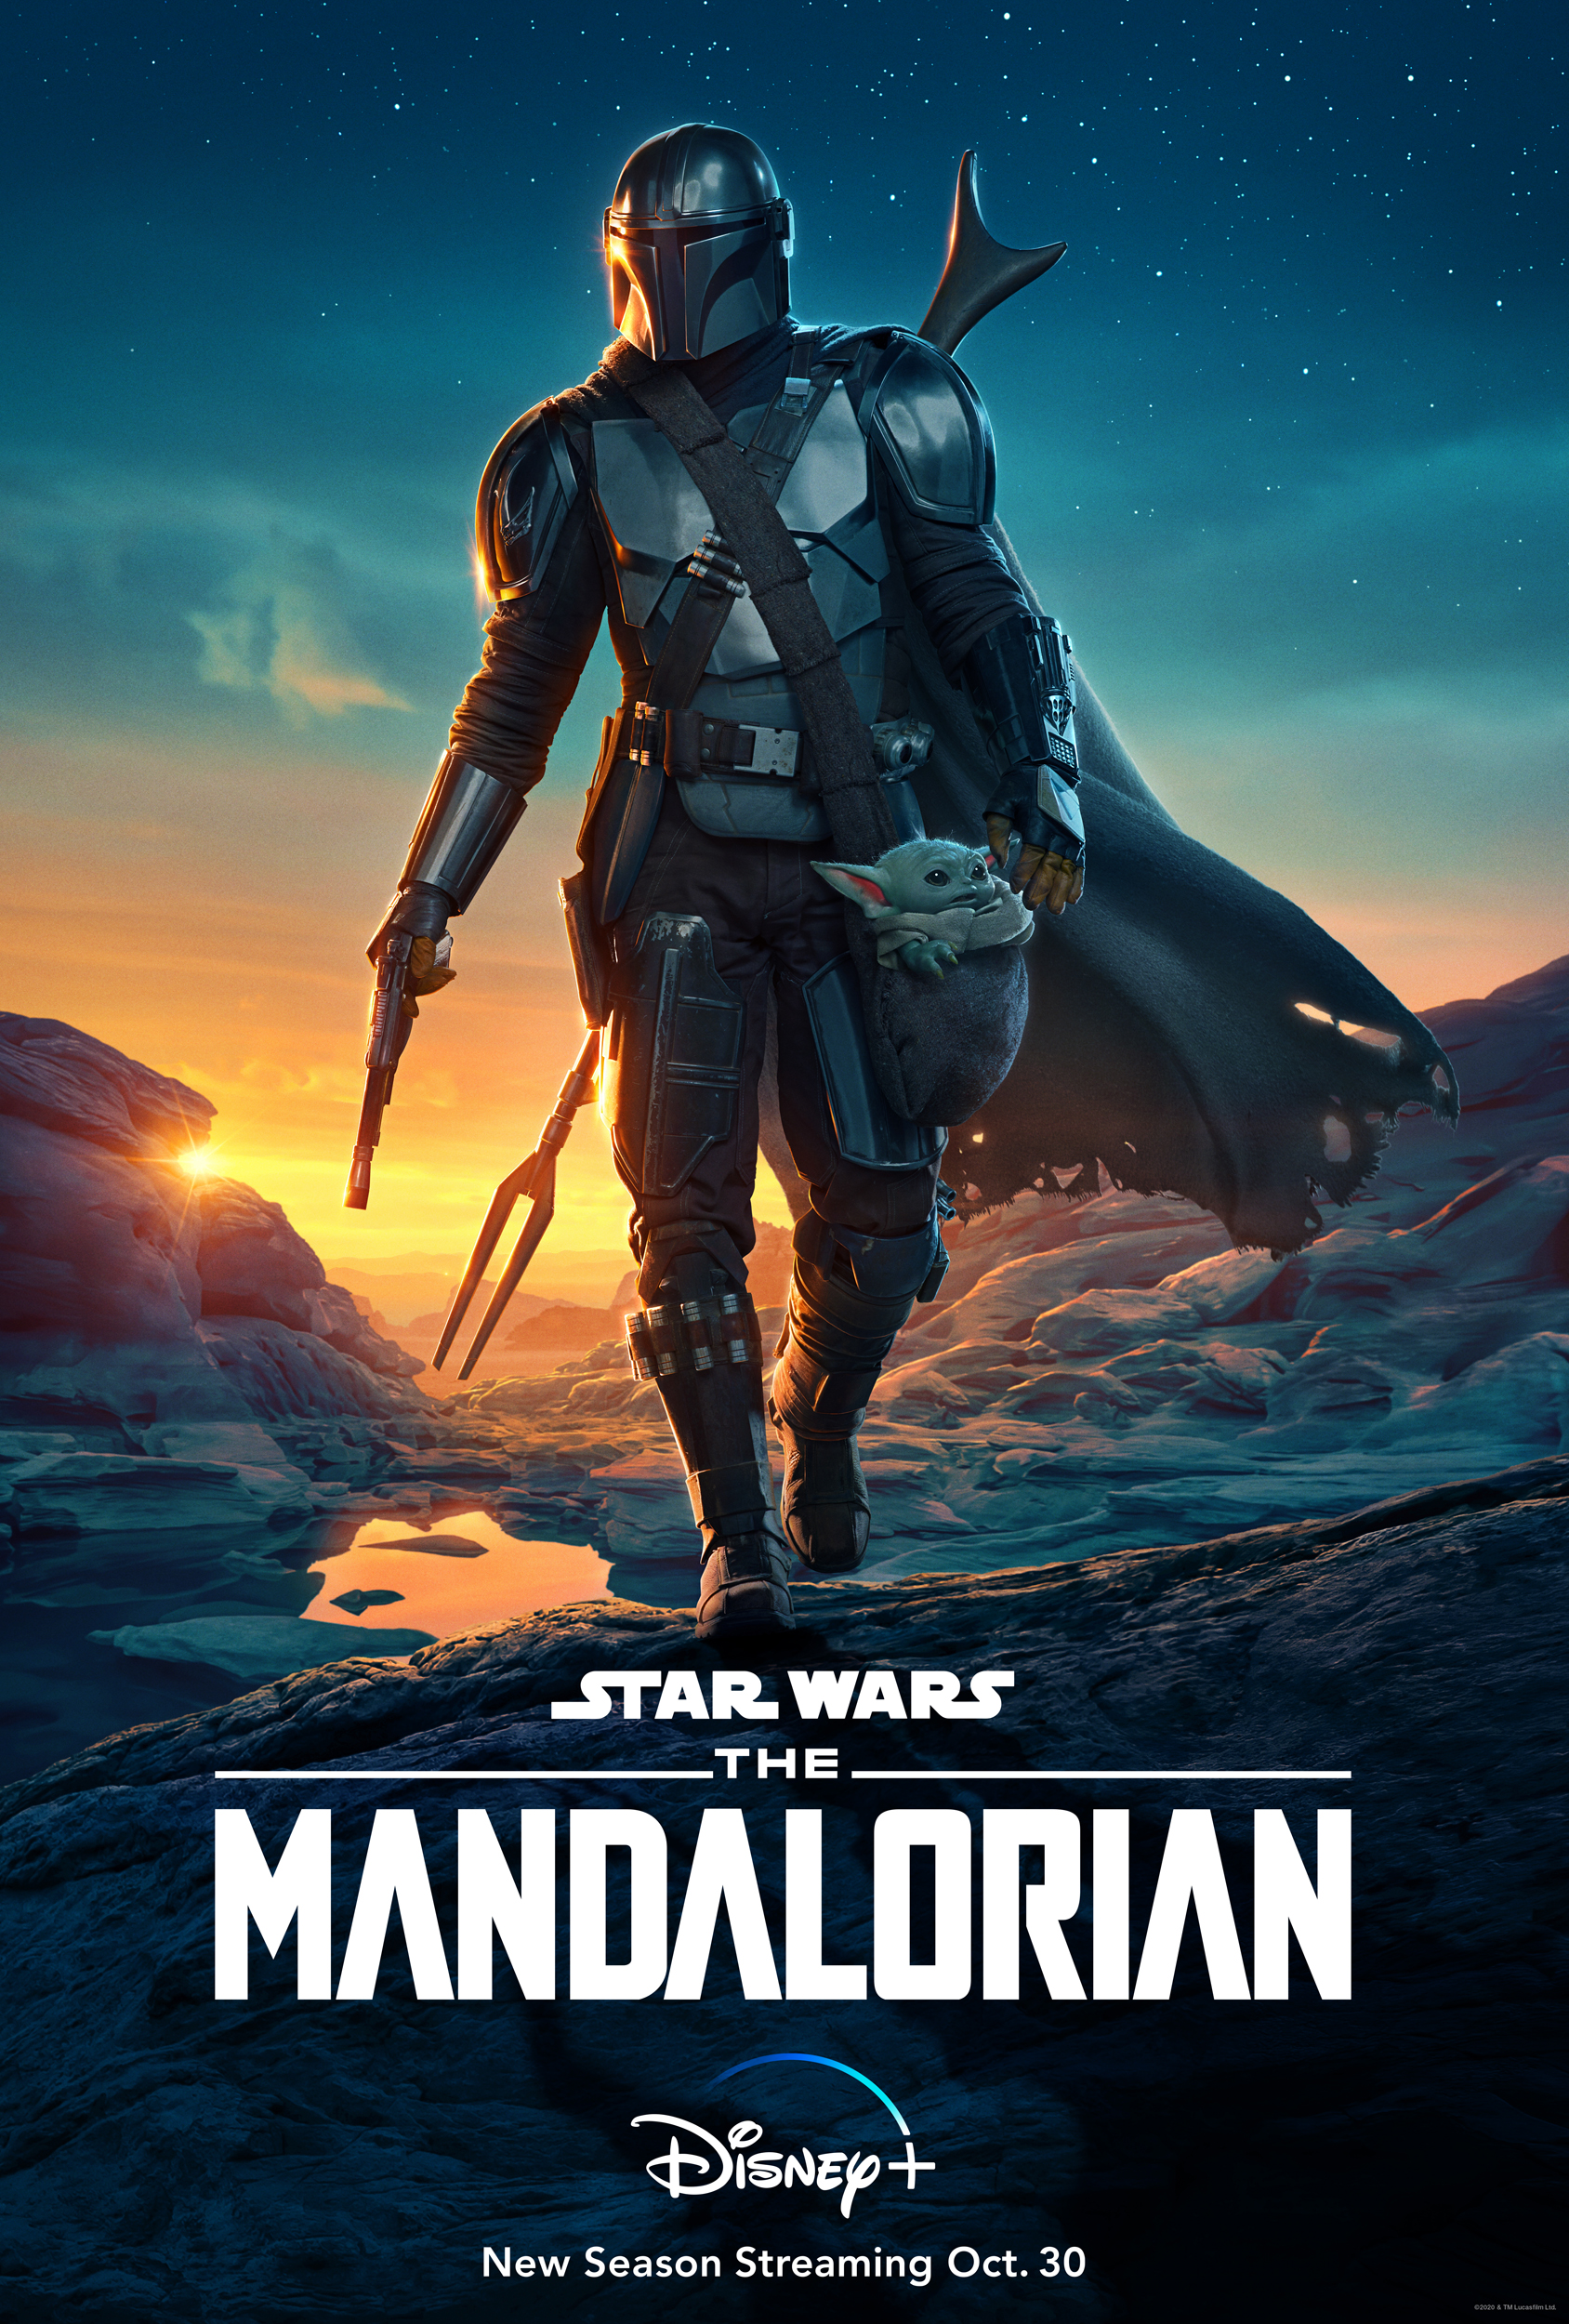 The Mandalorian 2020 S02EP6 English 720p HDRip ESubs 200MB Download